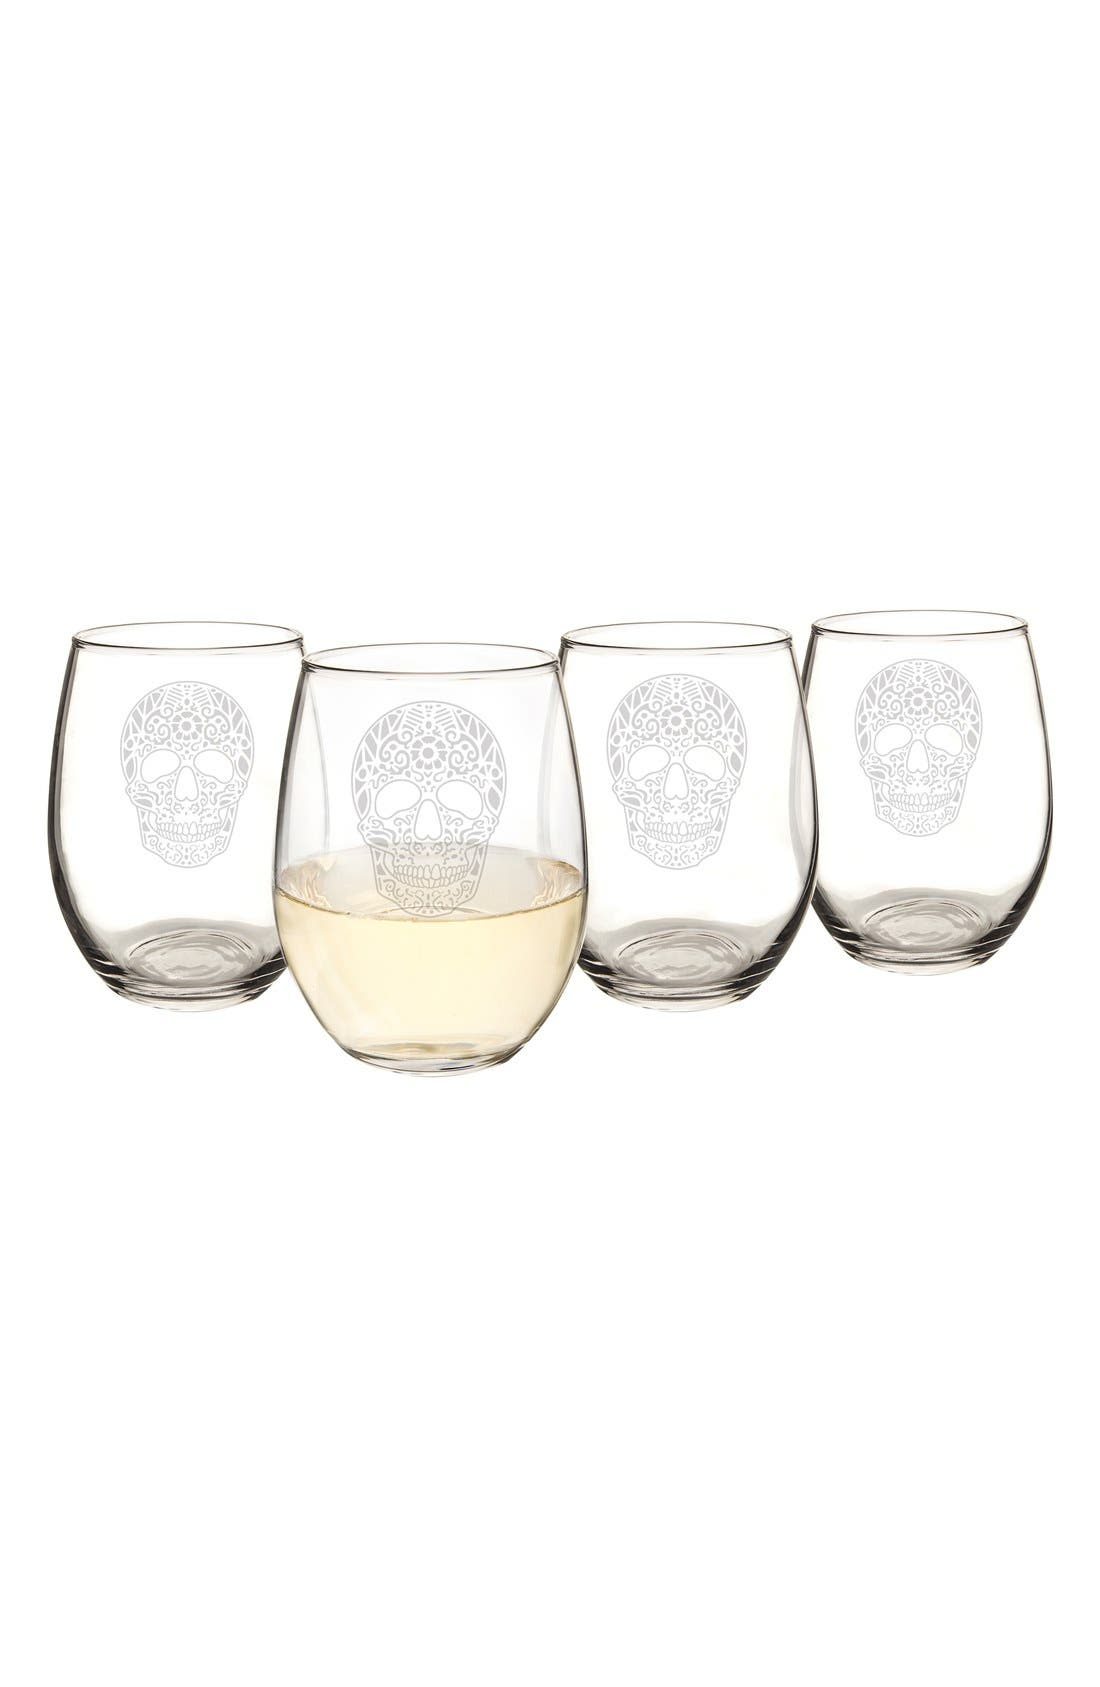 CATHY'S CONCEPTS, Sugar Skulls Set of 4 Stemless Wine Glasses, Alternate thumbnail 2, color, 100